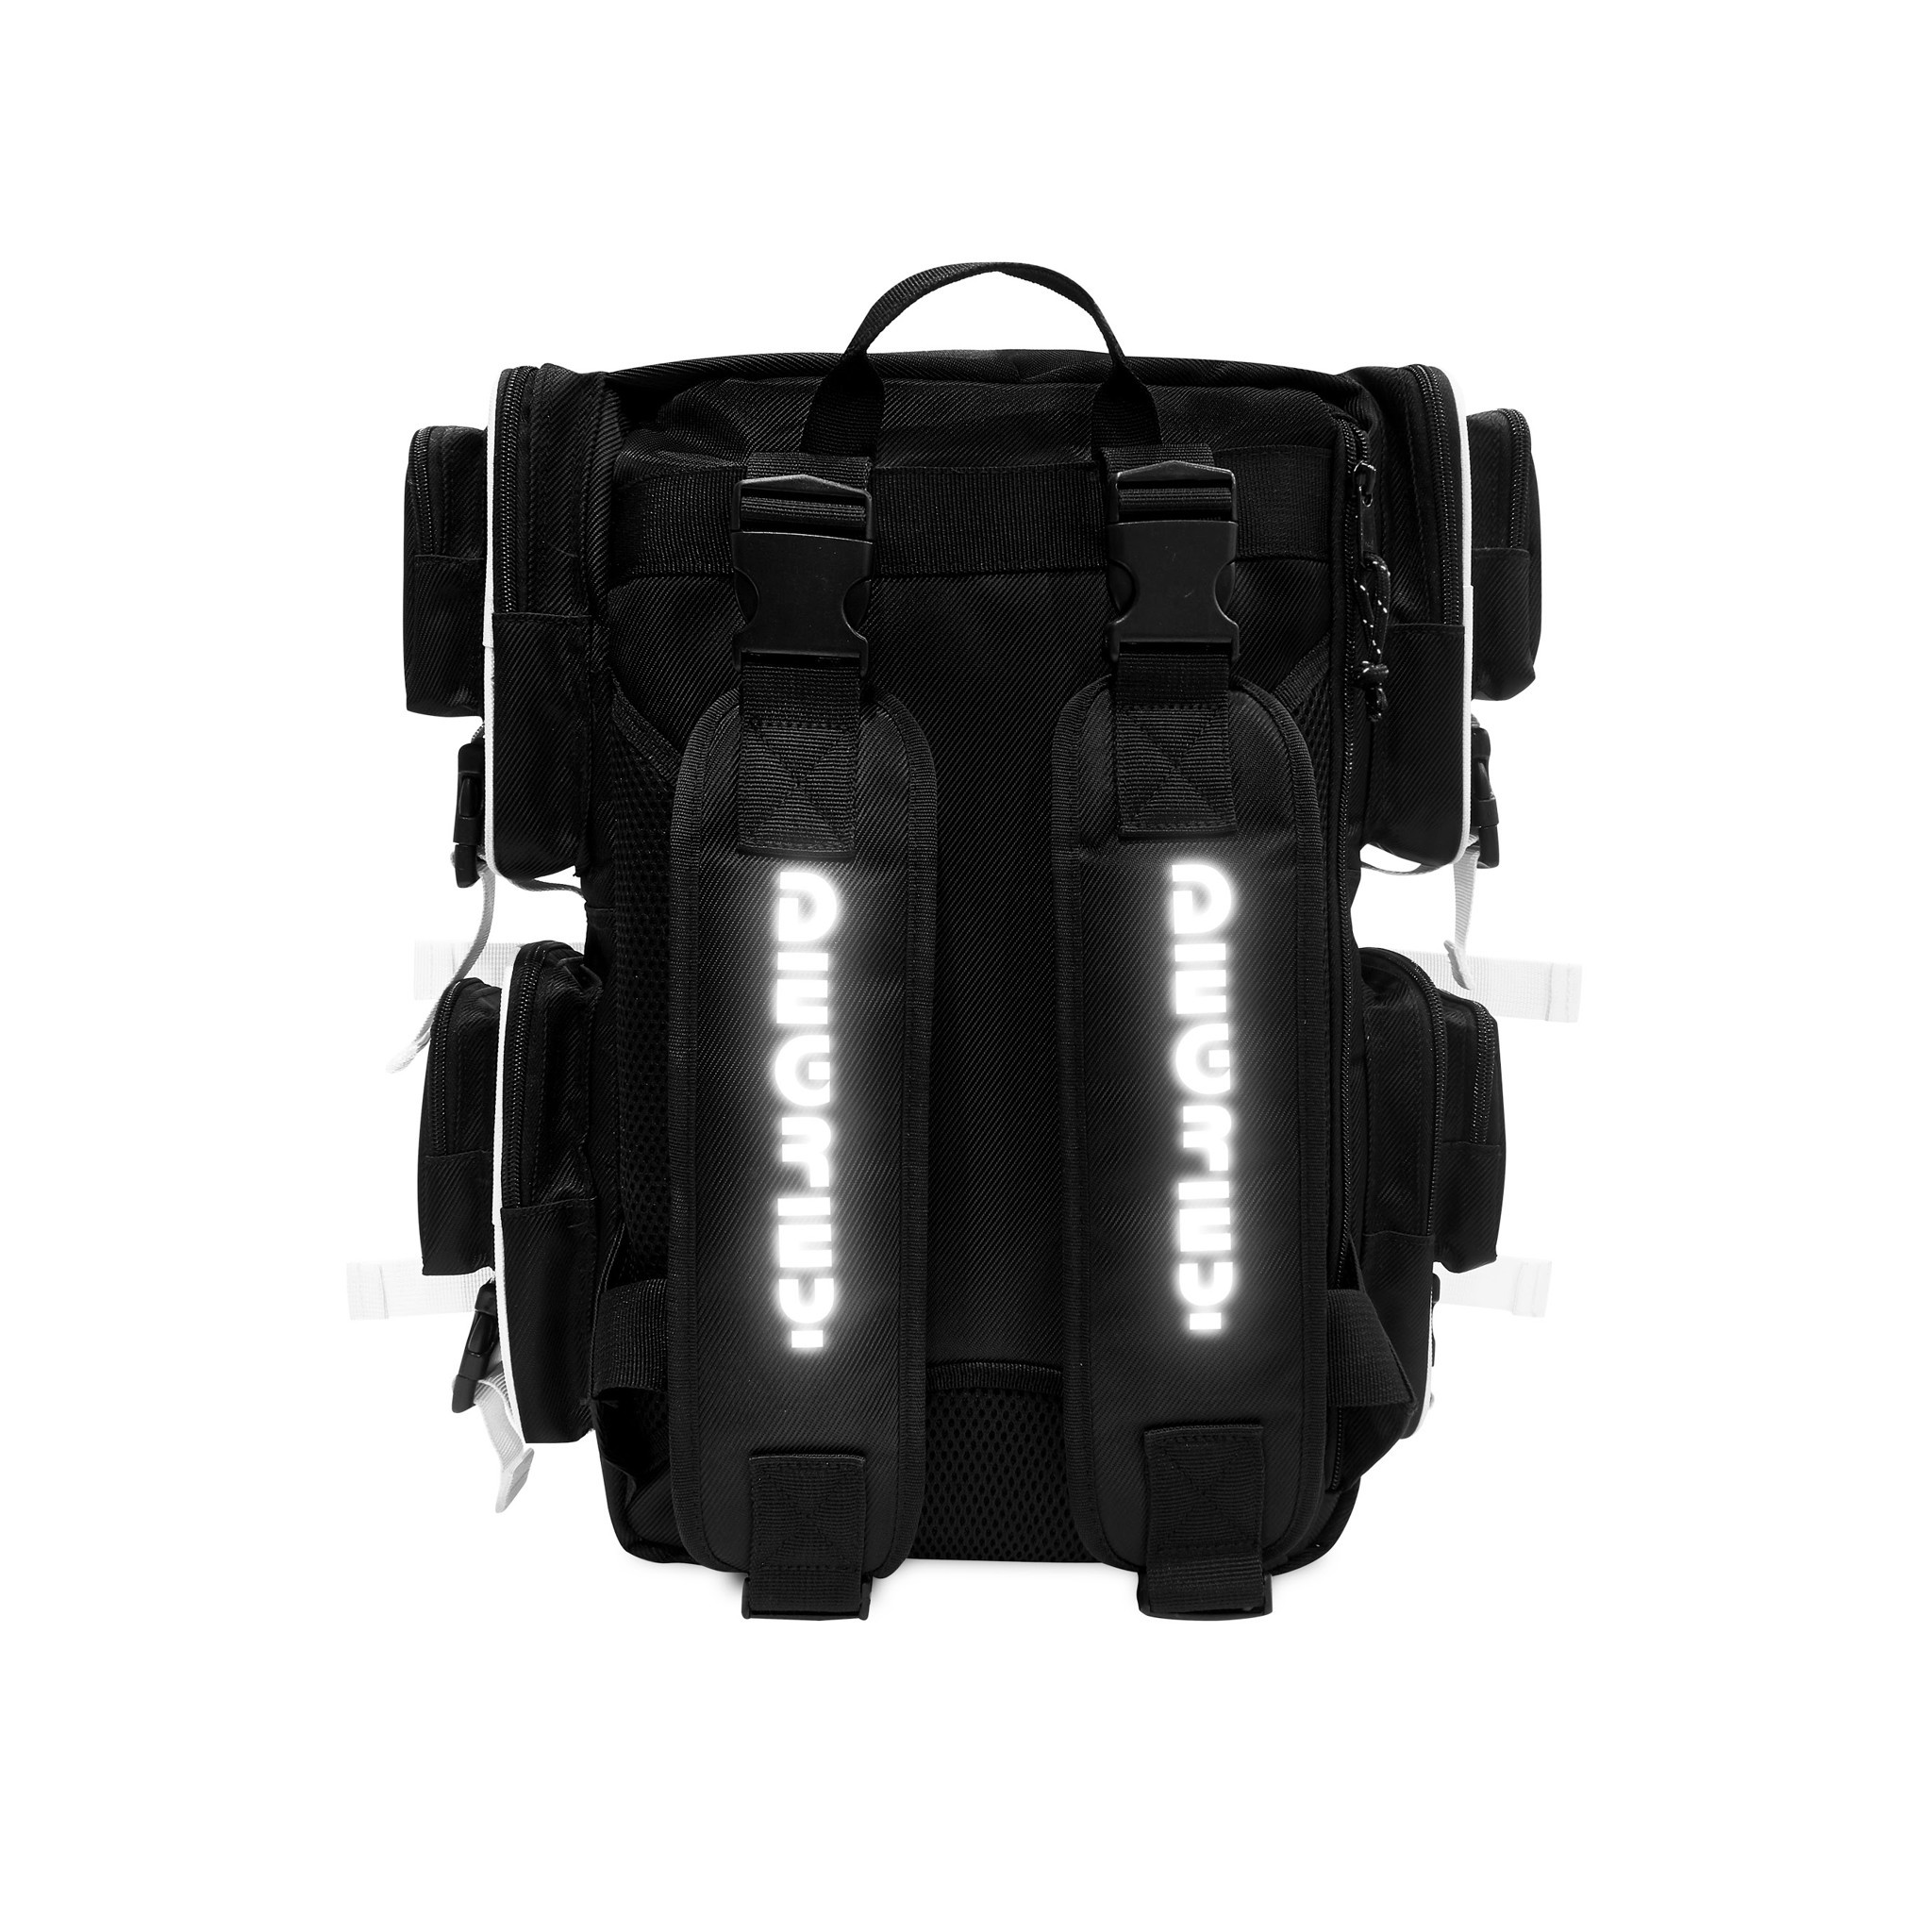 Degrey BackPack ss4 - DB ss4